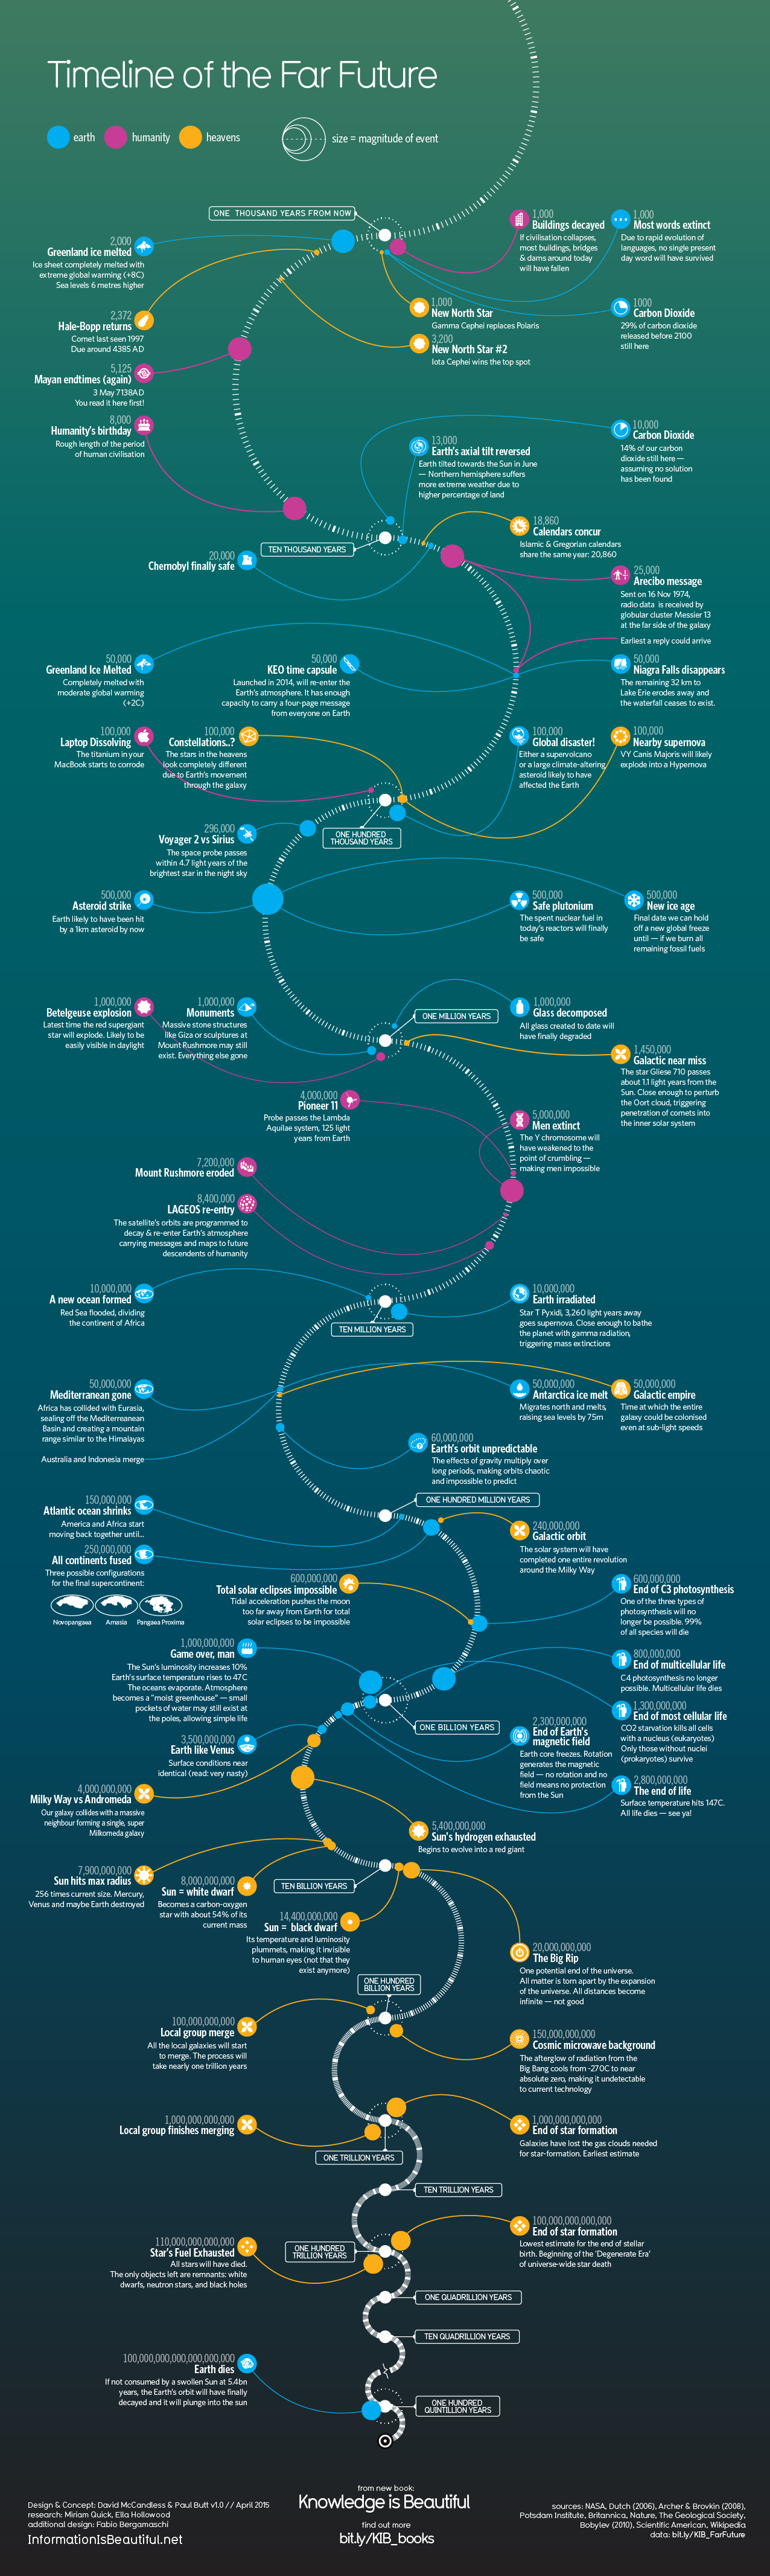 1276_timeline-of-the-far-future_apr2015-_new